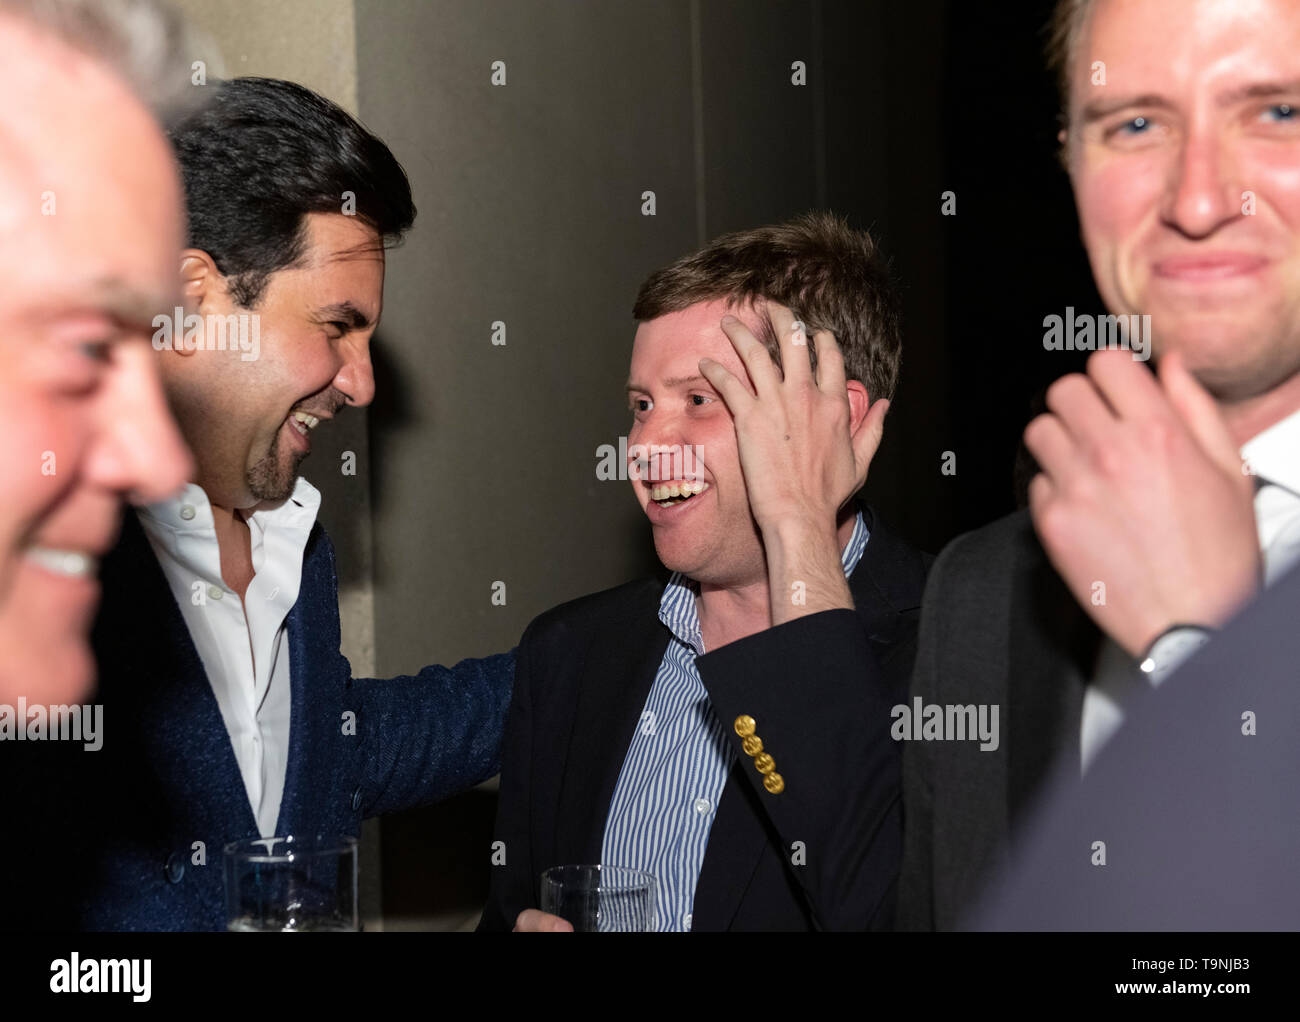 Washington, DC. 26th Apr, 2019. Former Trump campaign and administration official Matt Mowers, right, turns away to laugh as Qatar-America Institute advisory board member Andrew Bowen, right center, shares a humorous story with a laughing Sheikh Meshal Bin Hamad Al-Thani, Qatar's Ambassador to the United States, left center, and an unknown man, left, during Qatar's White House Correspondents Association pre-party in Washington, DC, on April 26, 2019. Credit: Ron Sachs/CNP | usage worldwide Credit: dpa/Alamy Live News - Stock Image